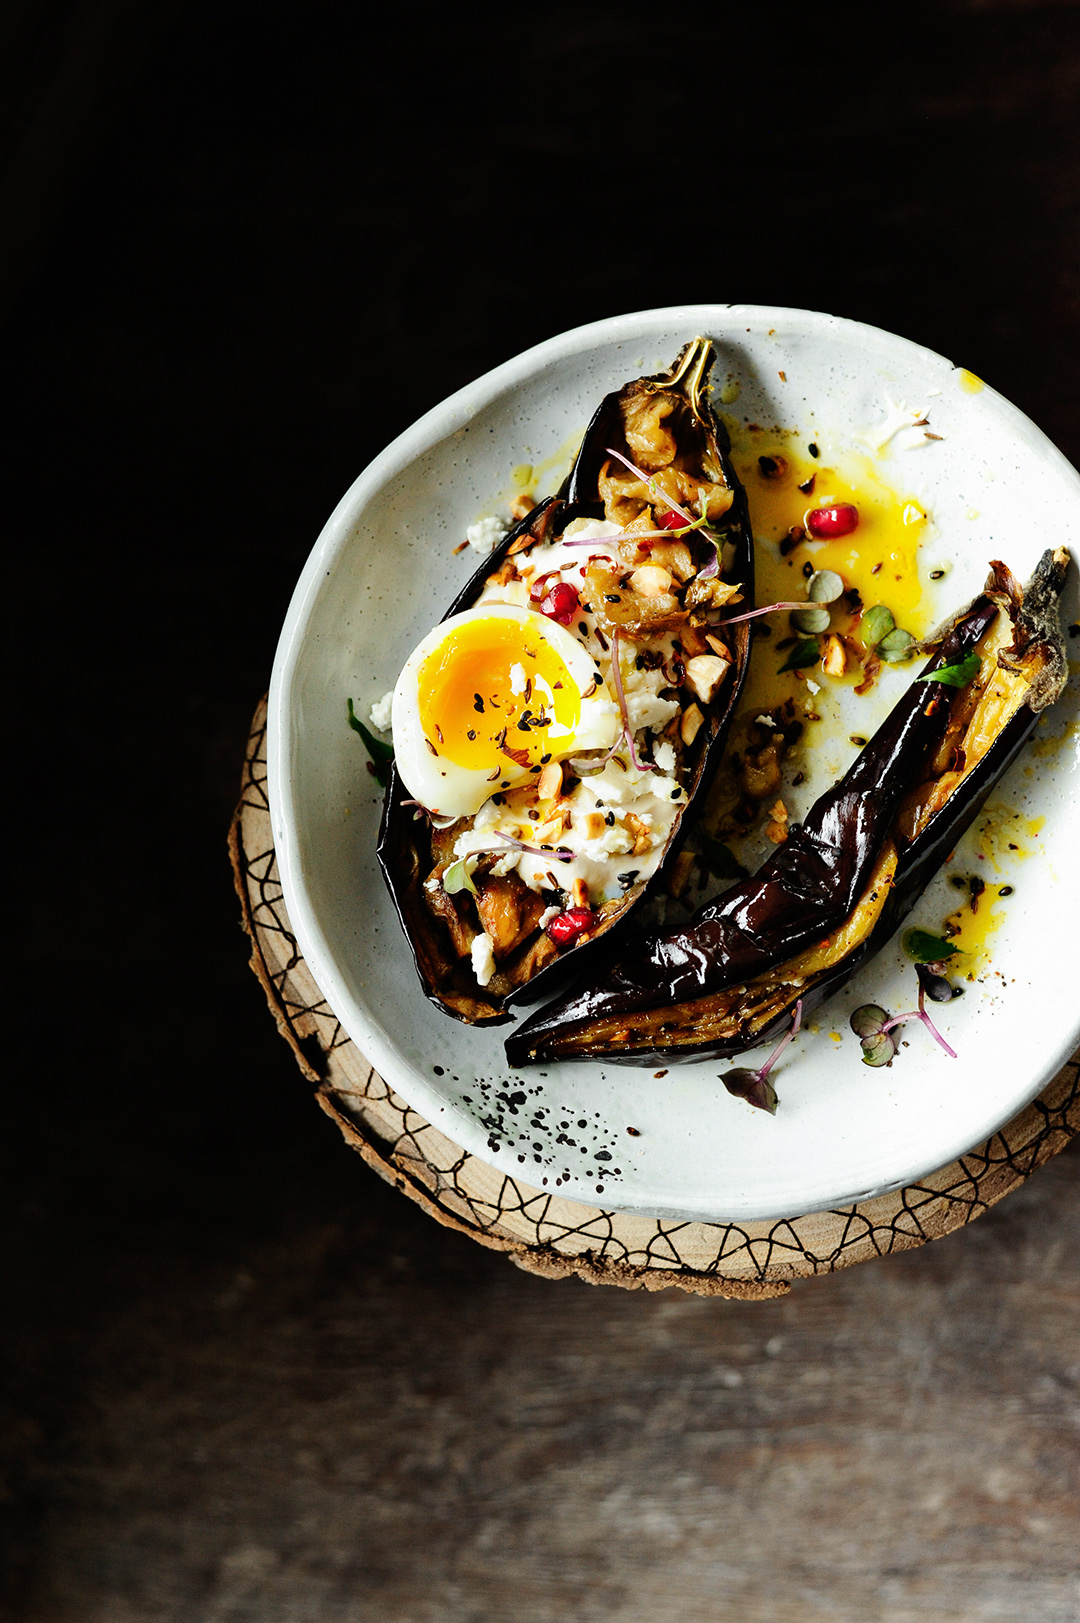 serving dumplings | Roasted aubergine with tahini dressing and hazelnuts